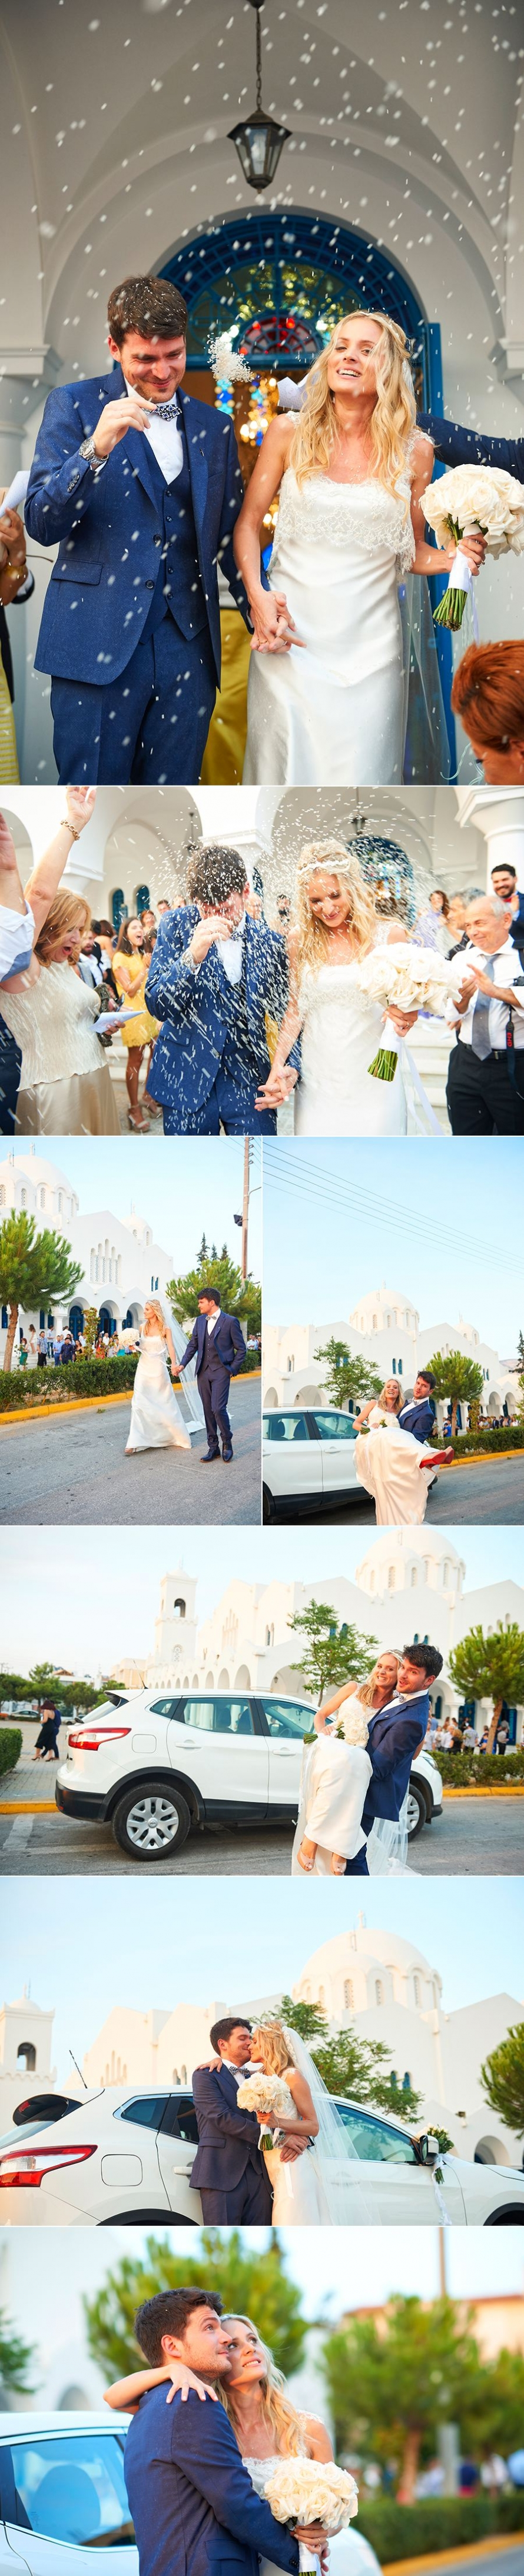 minas-georgia-wedding-photos-13